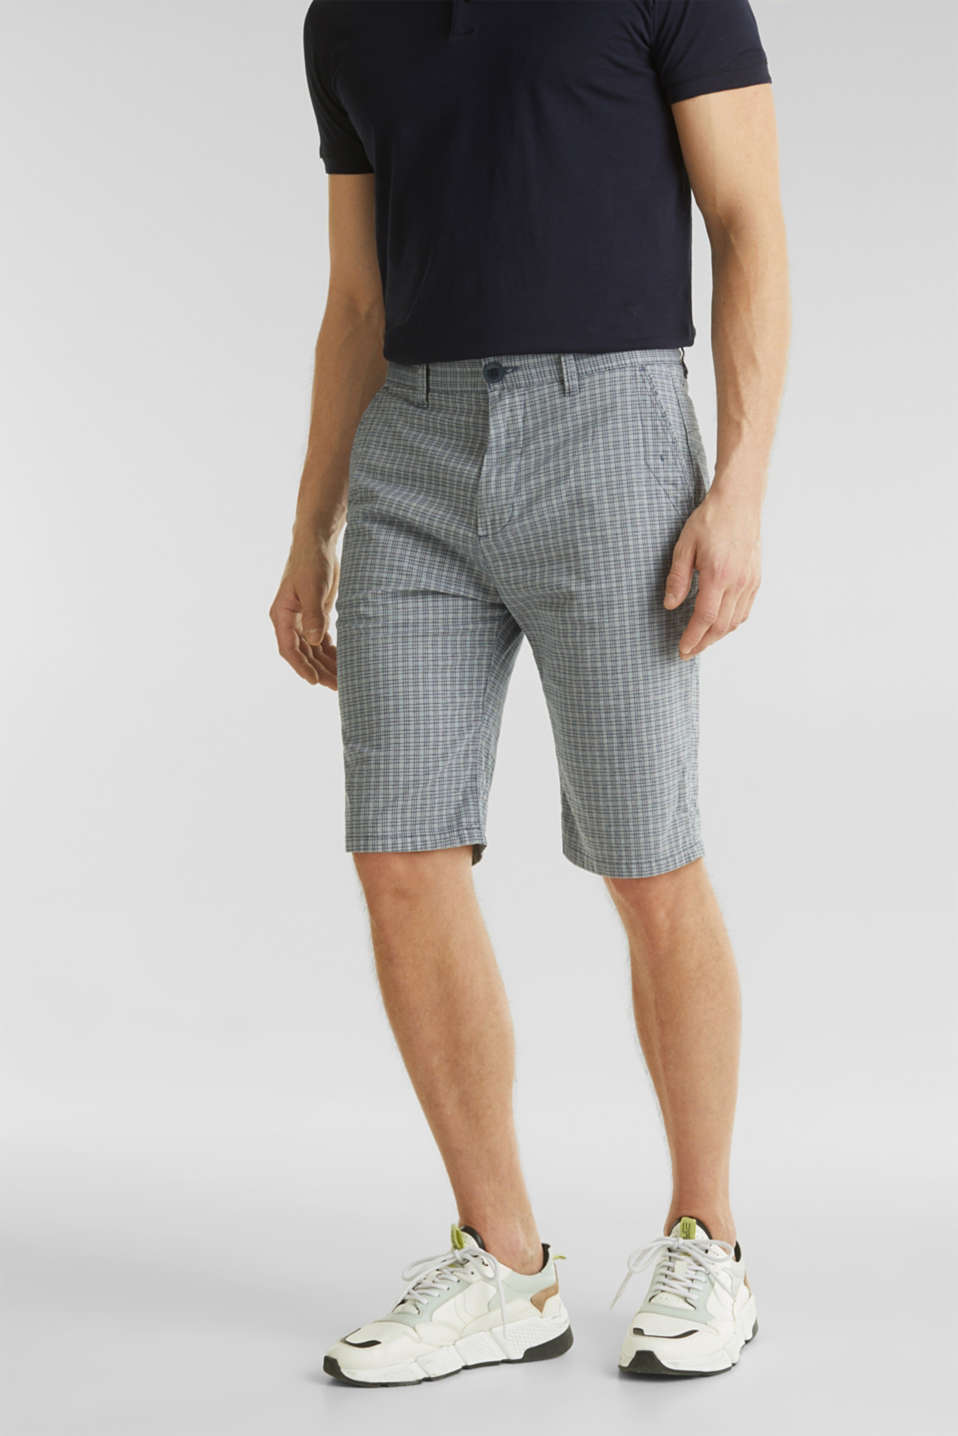 Esprit - Stretch Bermuda shorts containing organic cotton